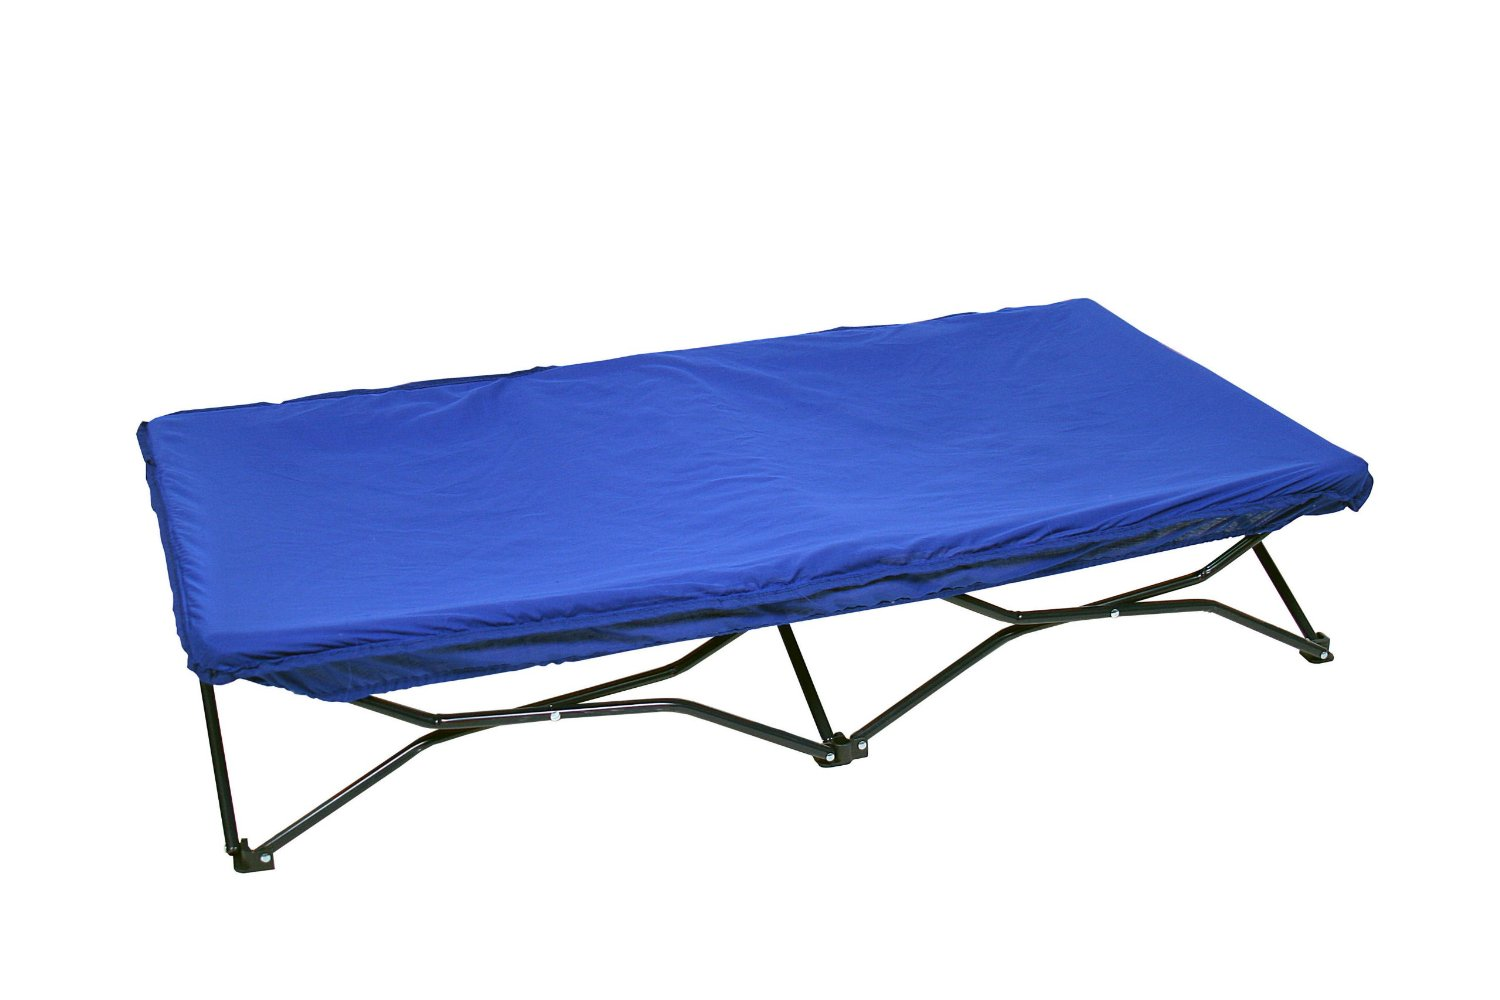 Product Review: Regalo My Cot Portable Travel Bed